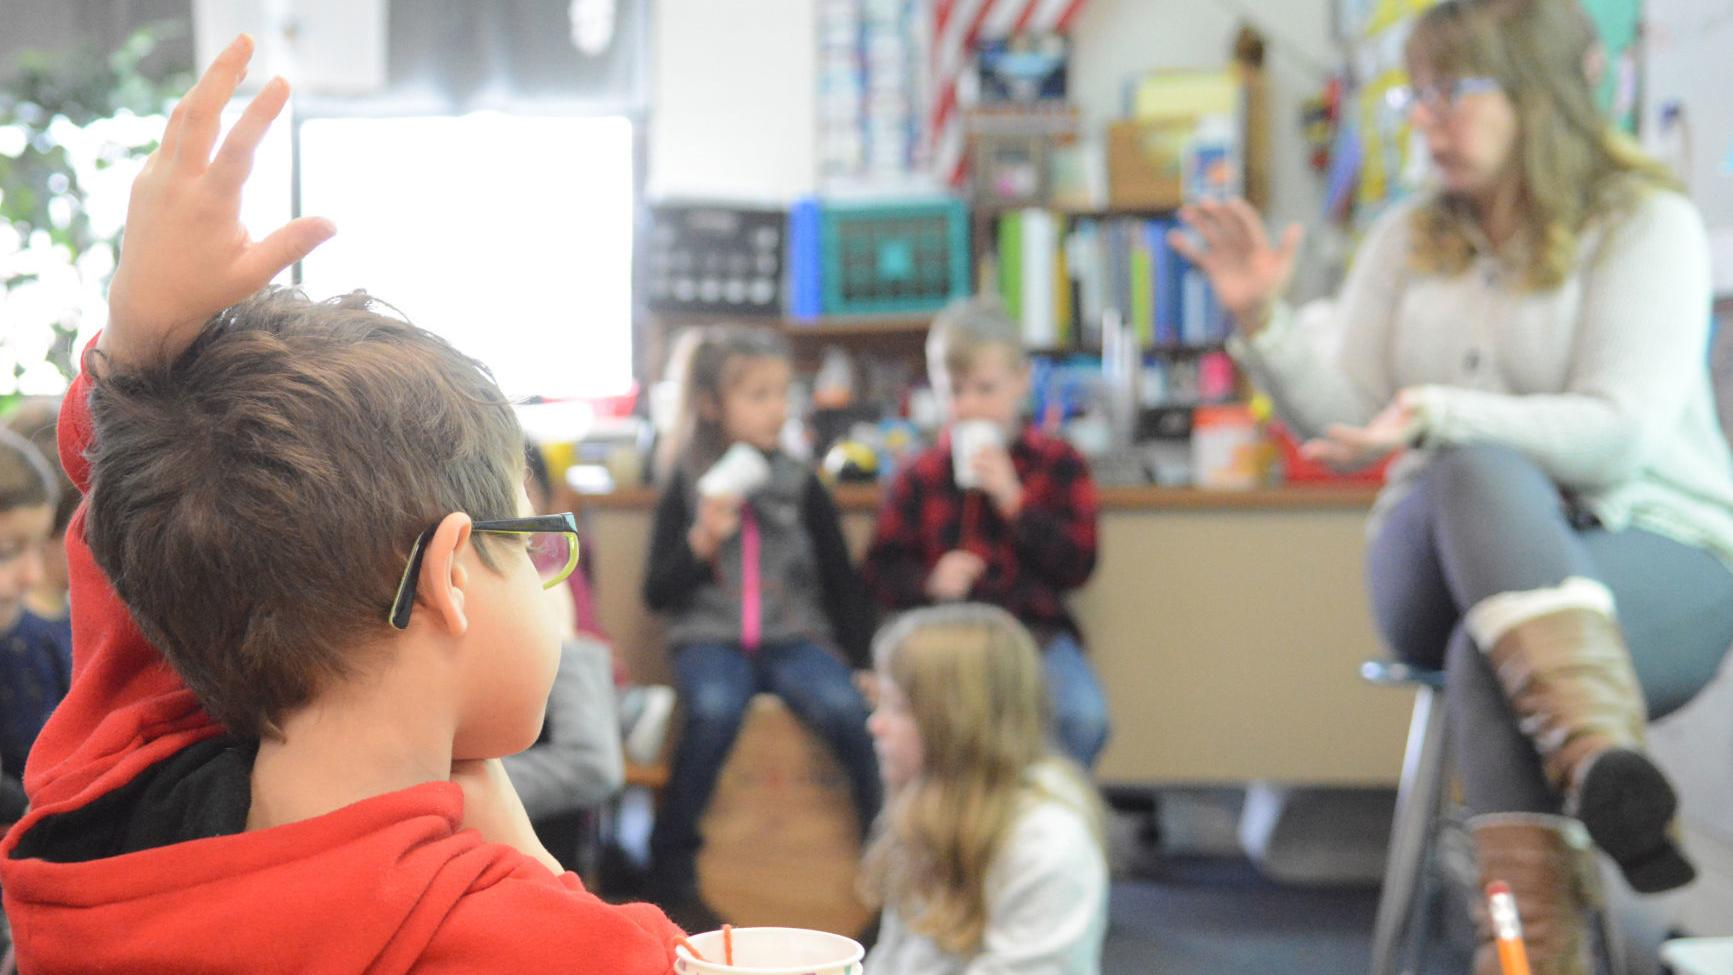 IN DEPTH: English learner achievement gap in area schools follows statewide trend